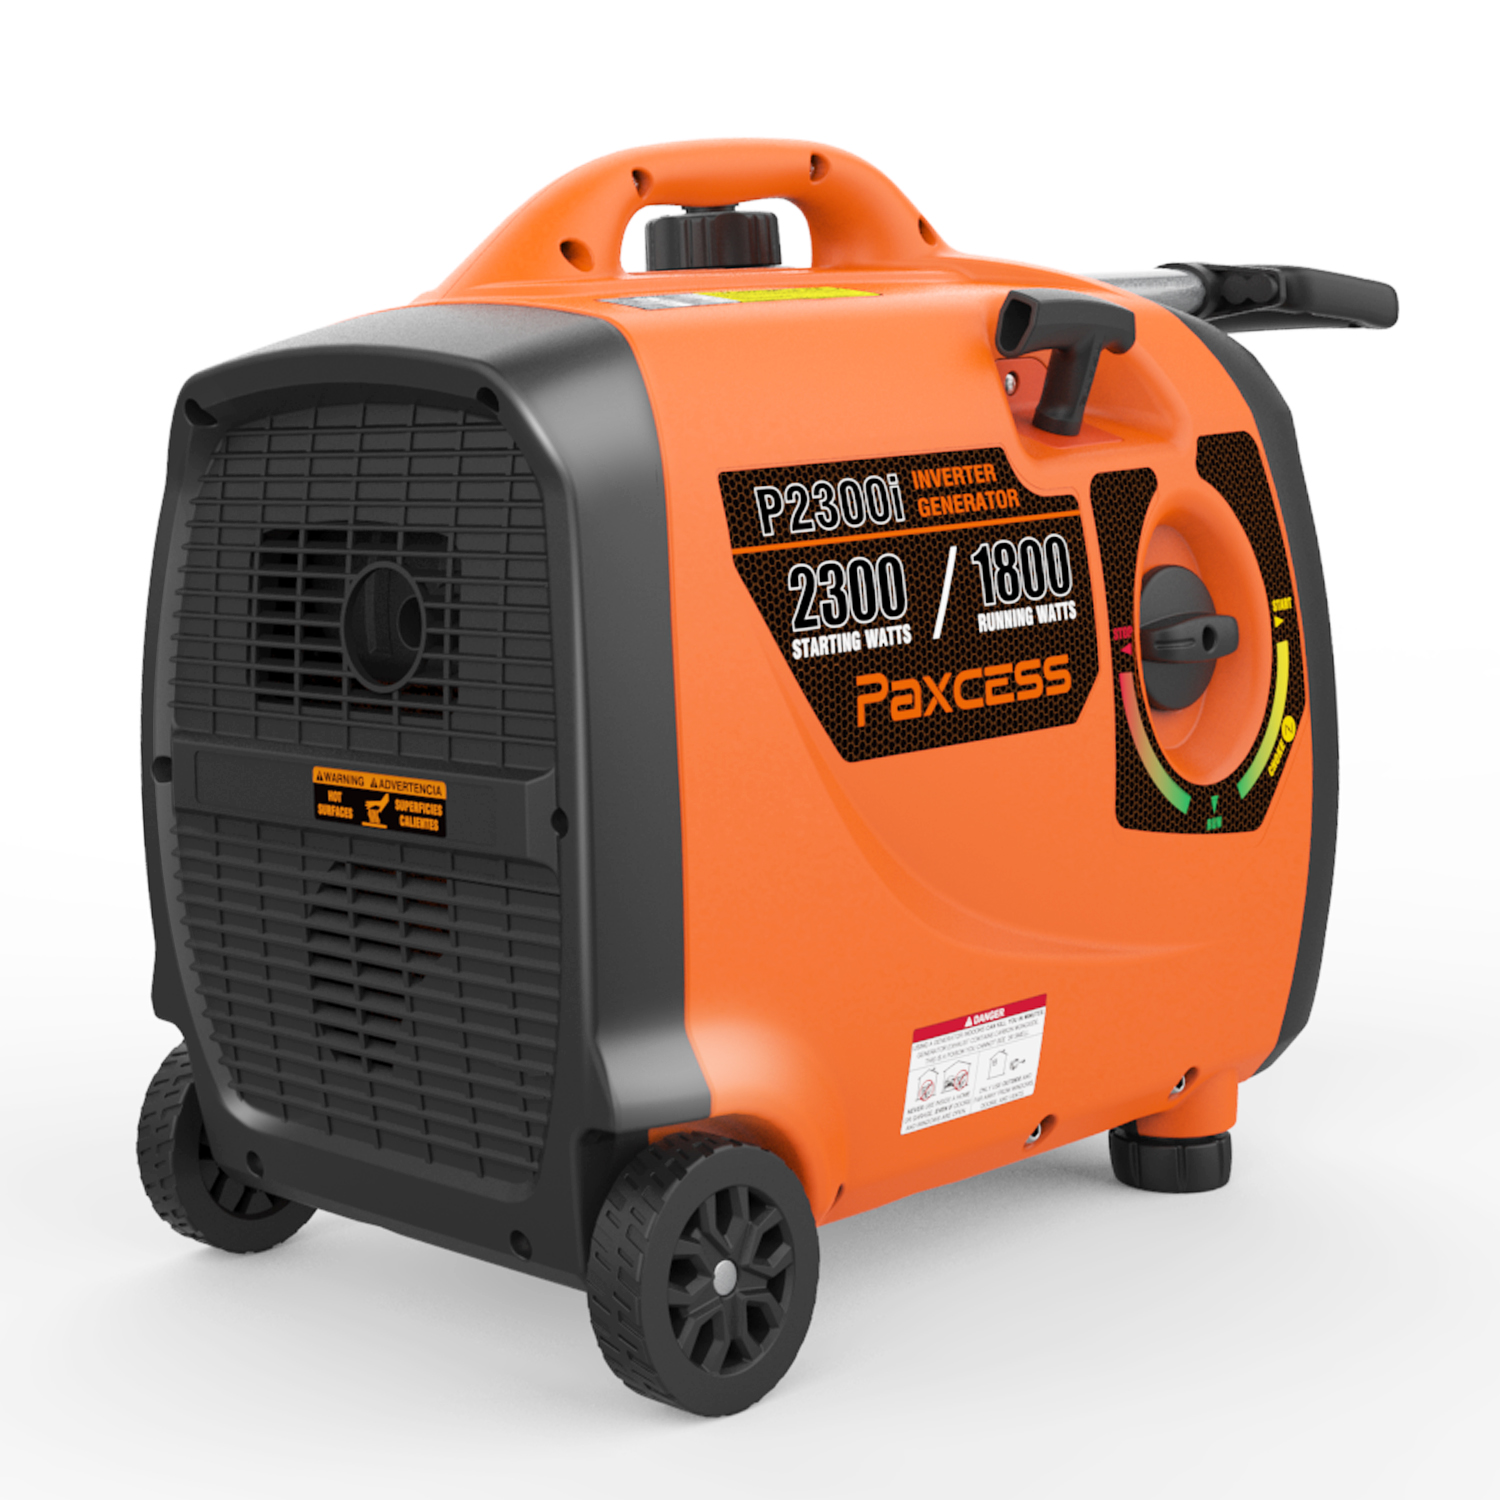 Paxcess Gas Powered 2300 Watts Portable Generator RV/Parallel Ready Inverter Generator With Wheel and Handle Generator CARB Complaint For HOME, Camping, Travel, Emergency.